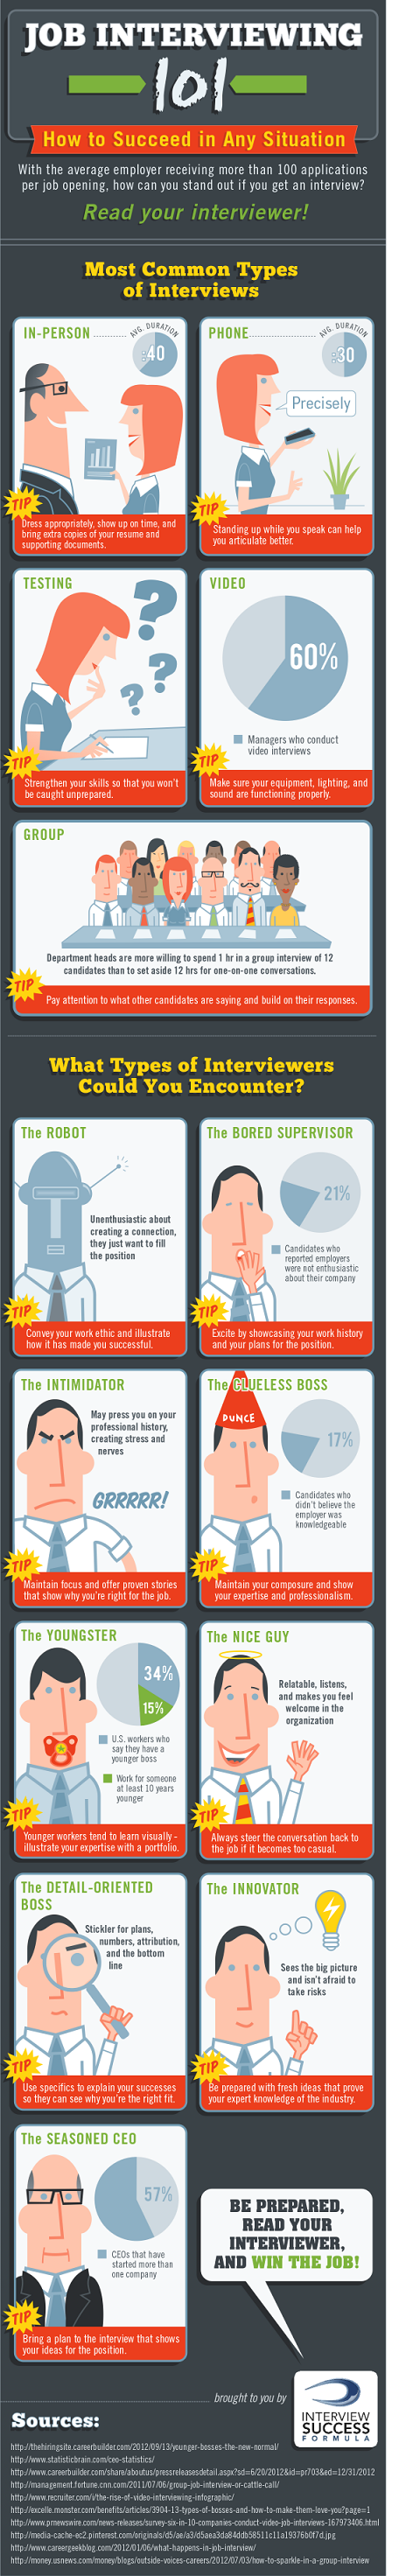 How to Succeed Job Interviews #Infographic